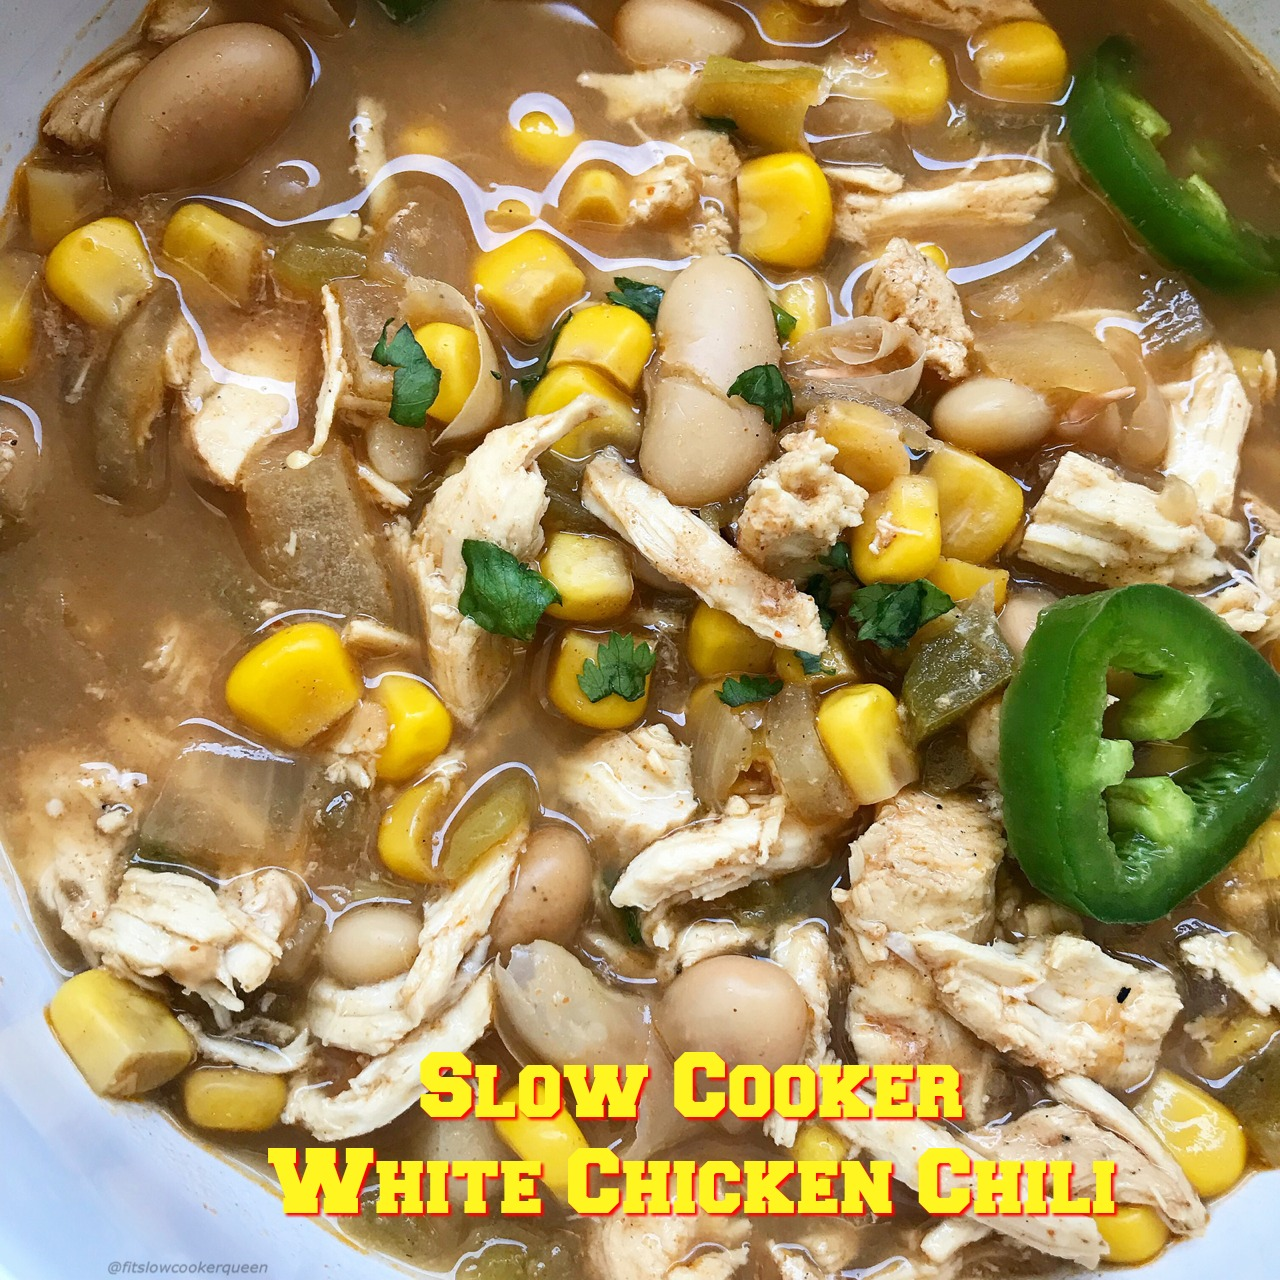 White chicken chili is a healthy, fun twist on a slow cooker staple. This chili is done in just a few hours yet the aroma and flavors are so strong you'd think it had been cooking all day.